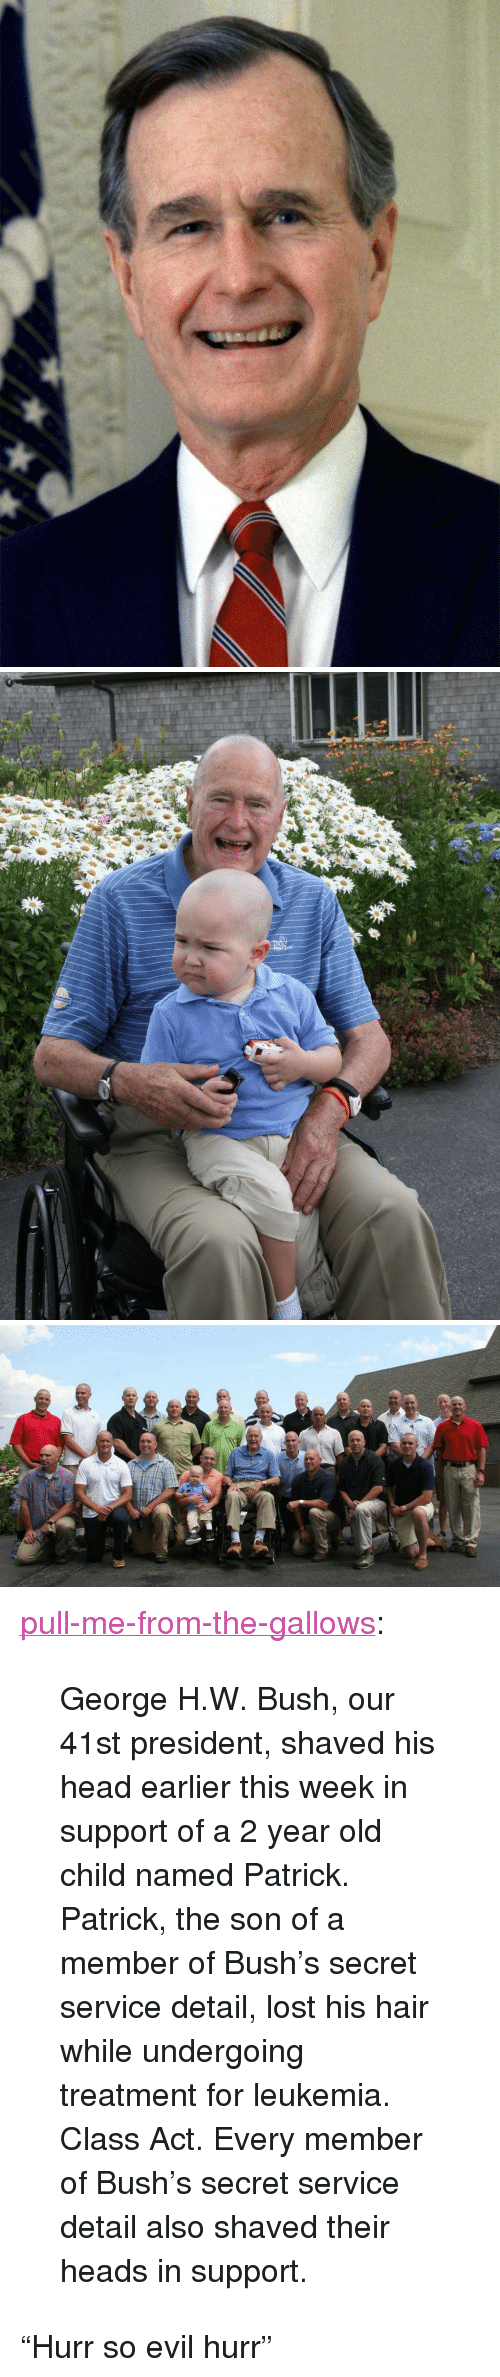 """Head, Tumblr, and Lost: <p><a class=""""tumblr_blog"""" href=""""http://pull-me-from-the-gallows.tumblr.com/post/56367168692/george-h-w-bush-our-41st-president-shaved-his"""">pull-me-from-the-gallows</a>:</p> <blockquote> <p><span>George H.W. Bush, our 41st president, shaved his head earlier this week in support of a 2 year old child named Patrick. Patrick, the son of a member of Bush's secret service detail, lost his hair while undergoing treatment for leukemia. Class Act. Every member of Bush's secret service detail also shaved their heads in support.</span></p> </blockquote> <p>&ldquo;Hurr so evil hurr&rdquo;</p>"""